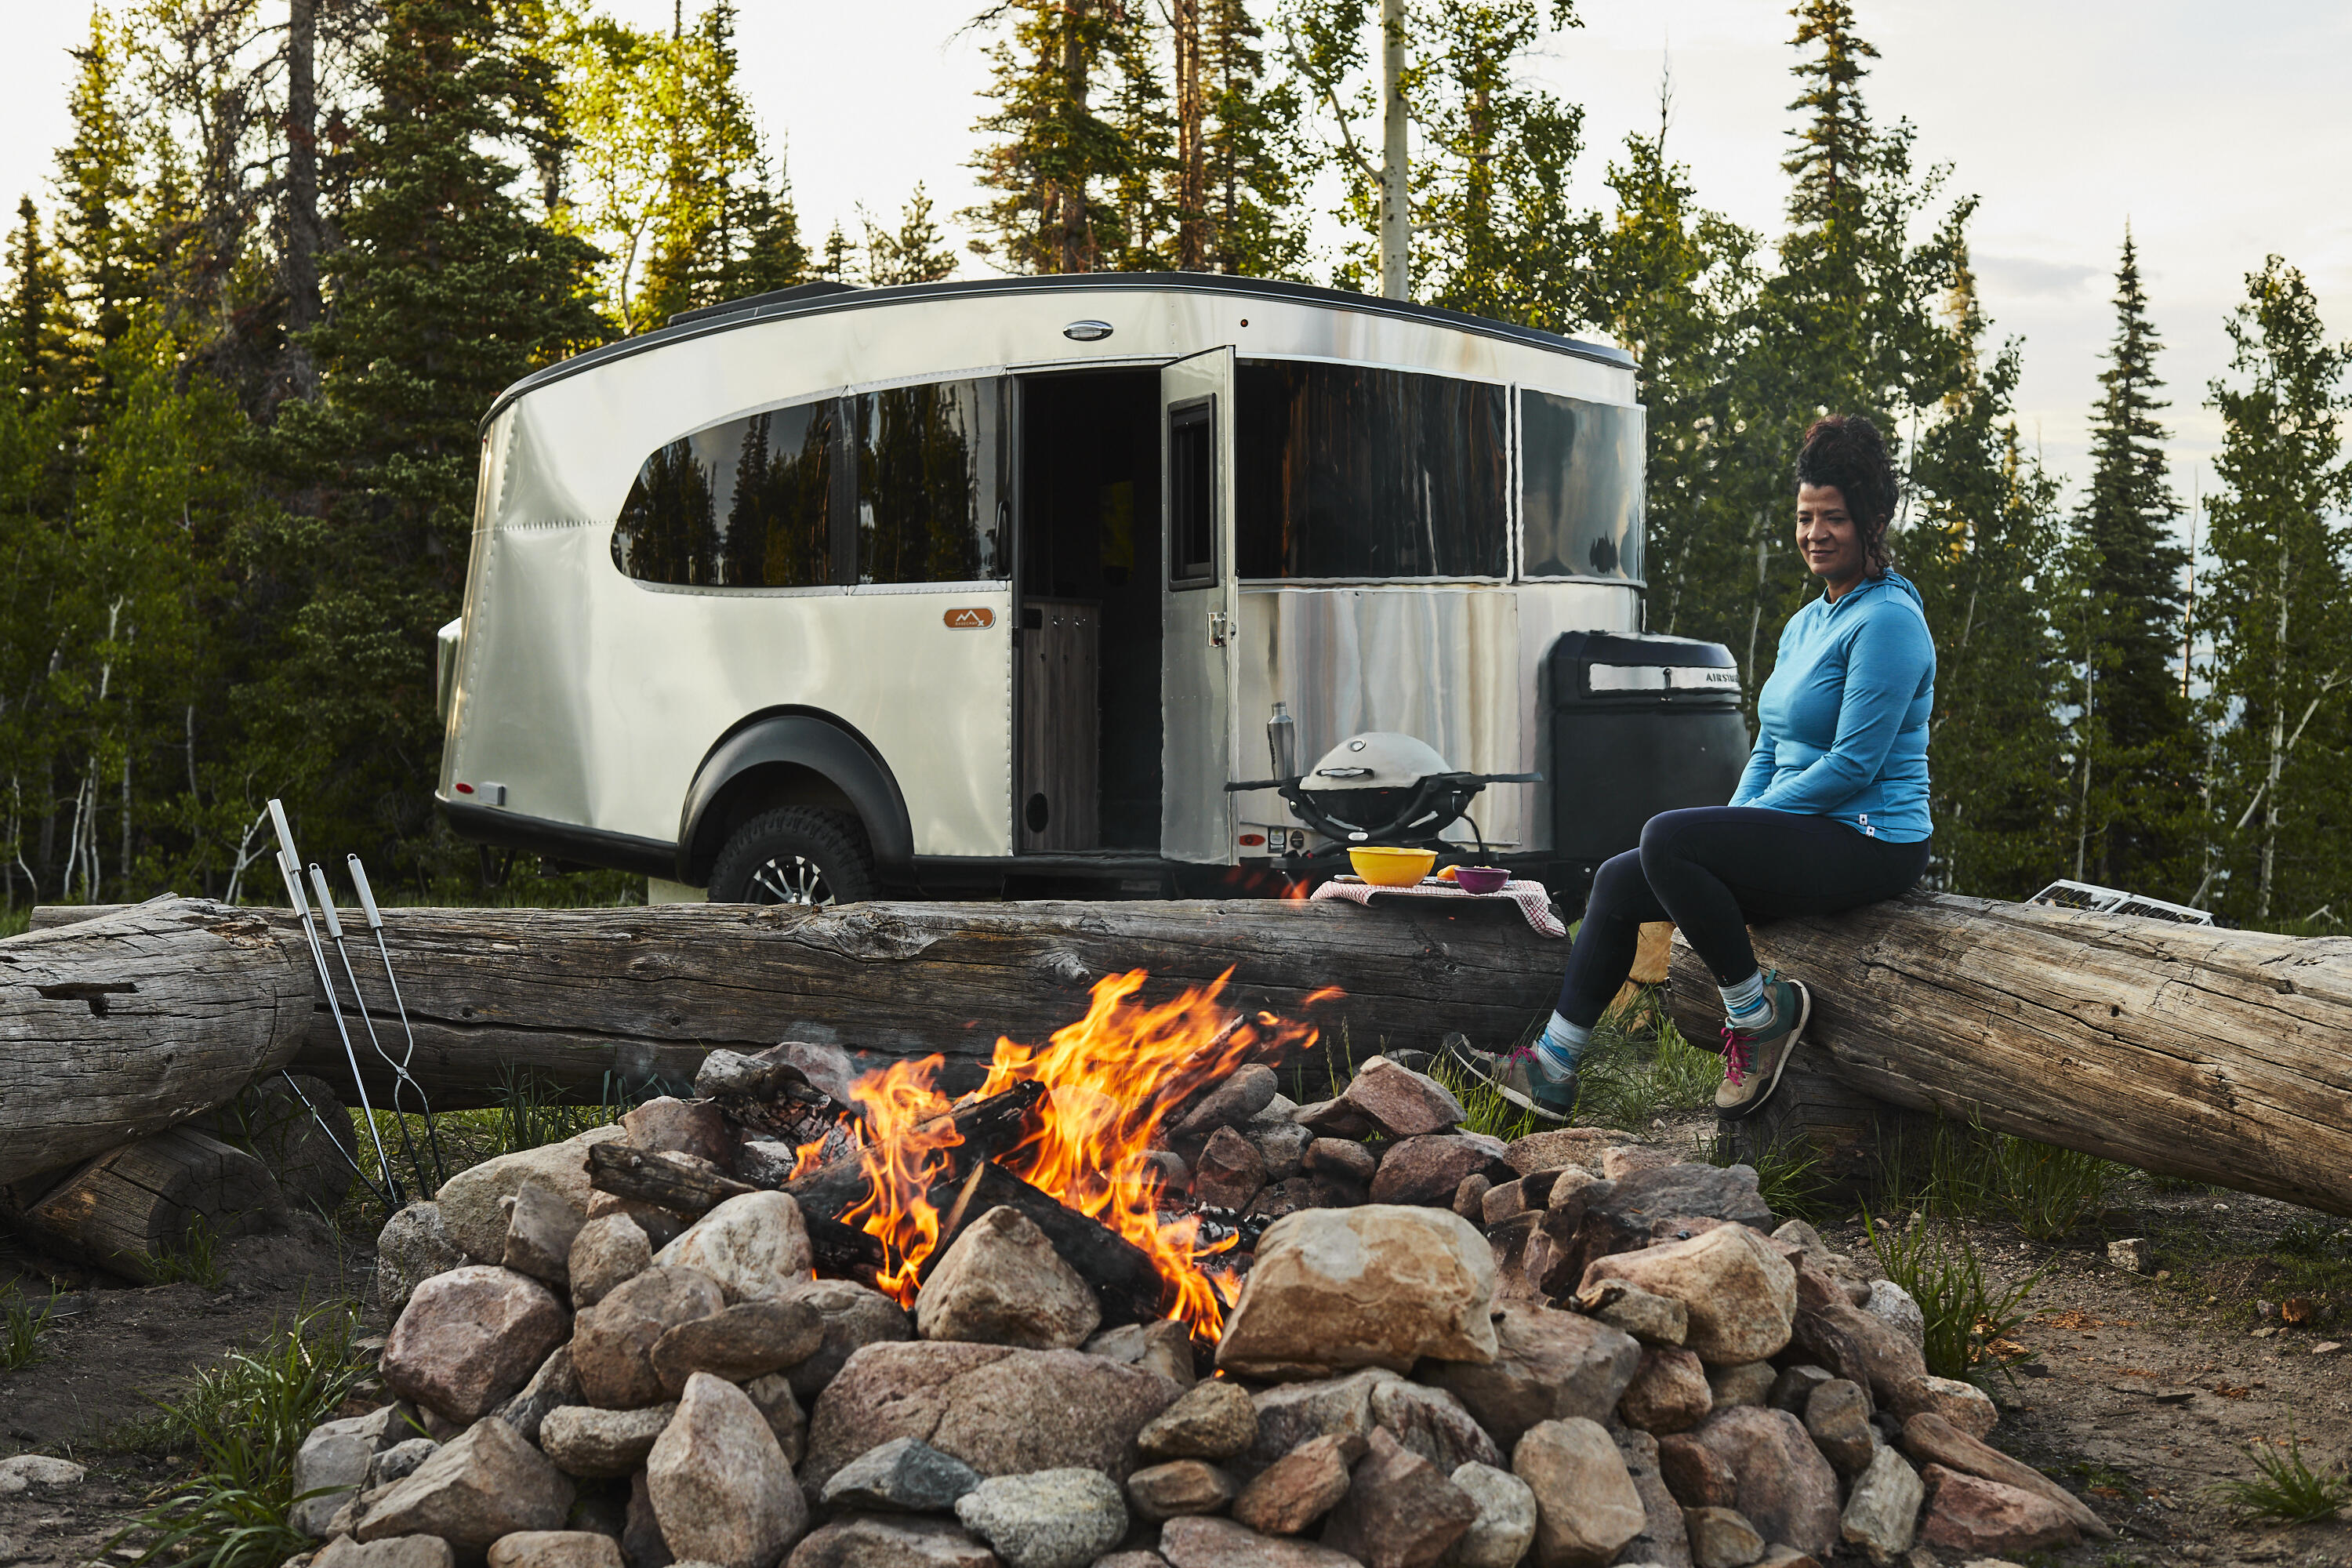 20-06-20-airstream-steamboat-dl-1242